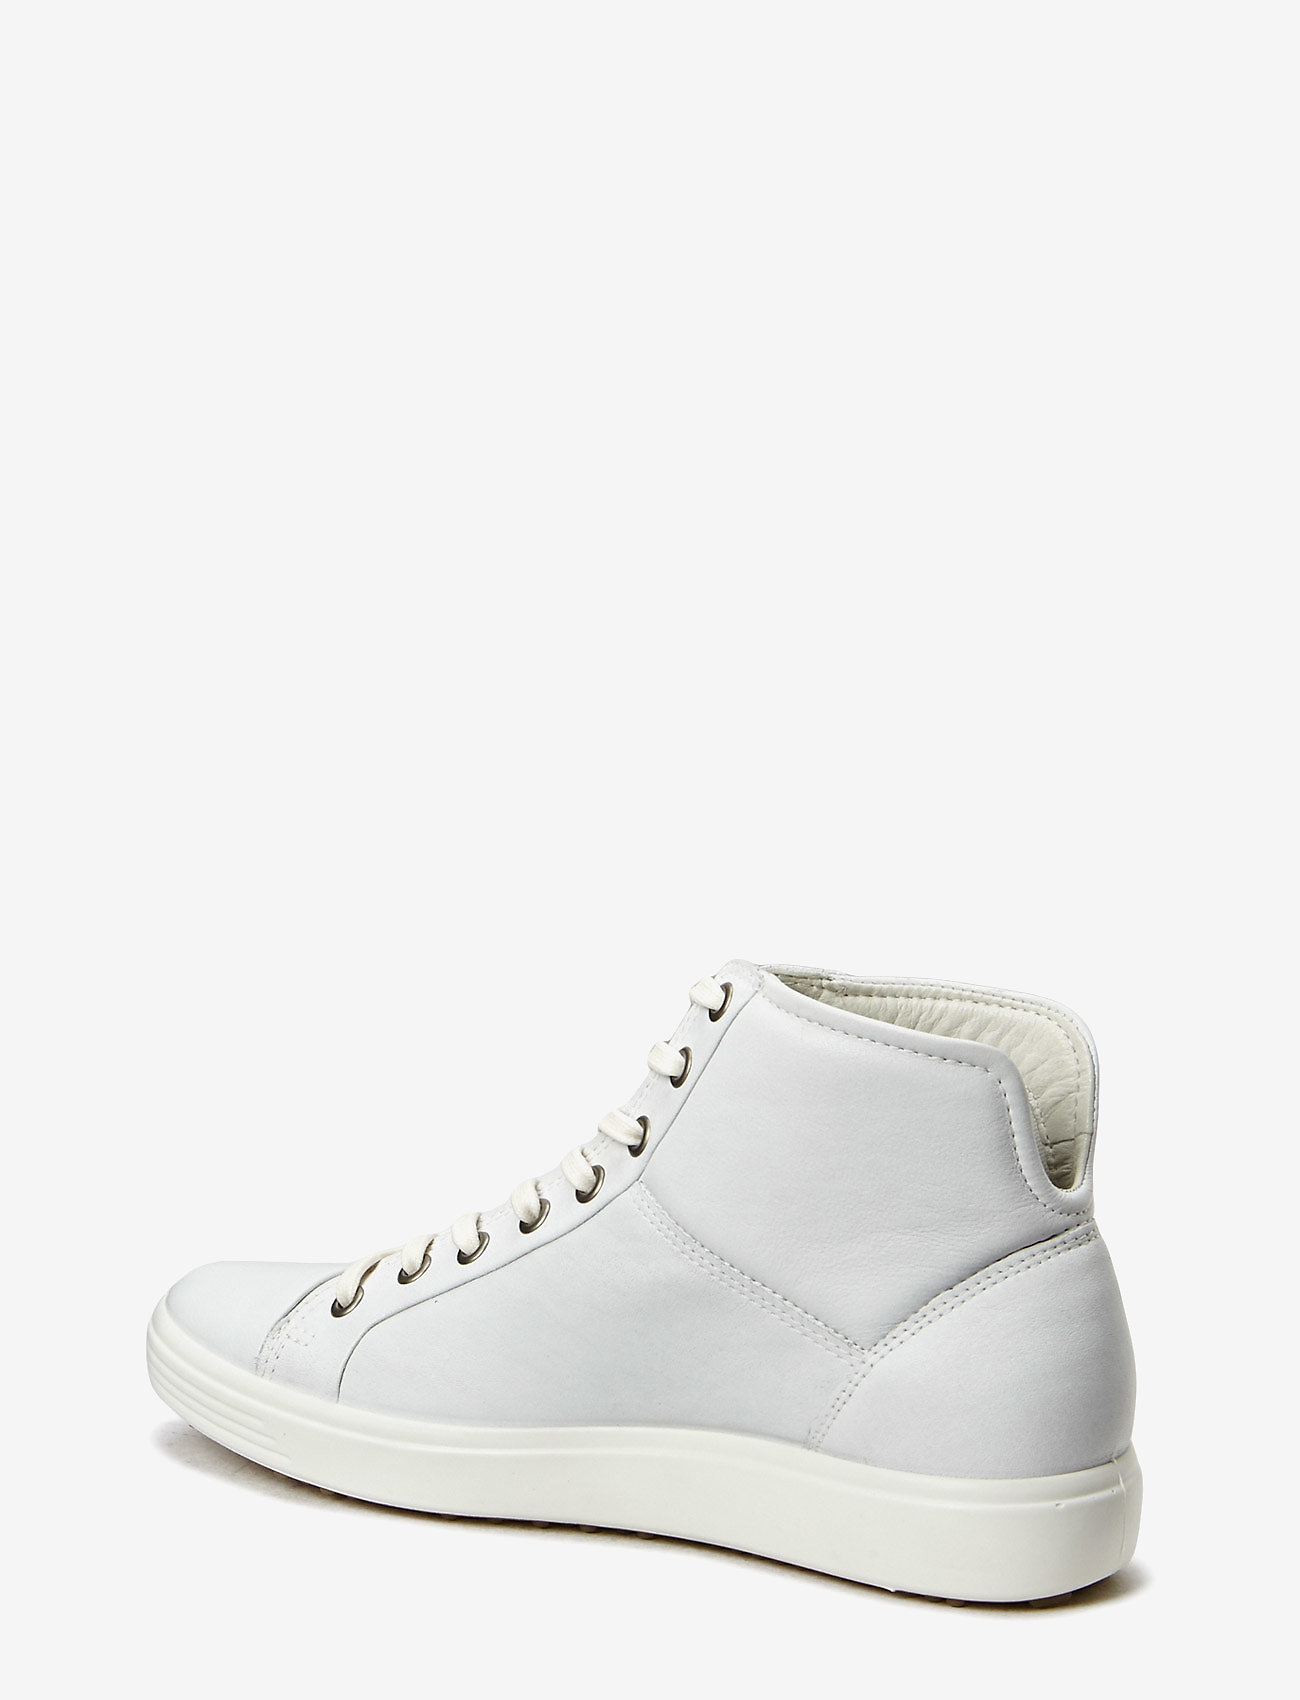 ECCO - SOFT 7 W - high top sneakers - white